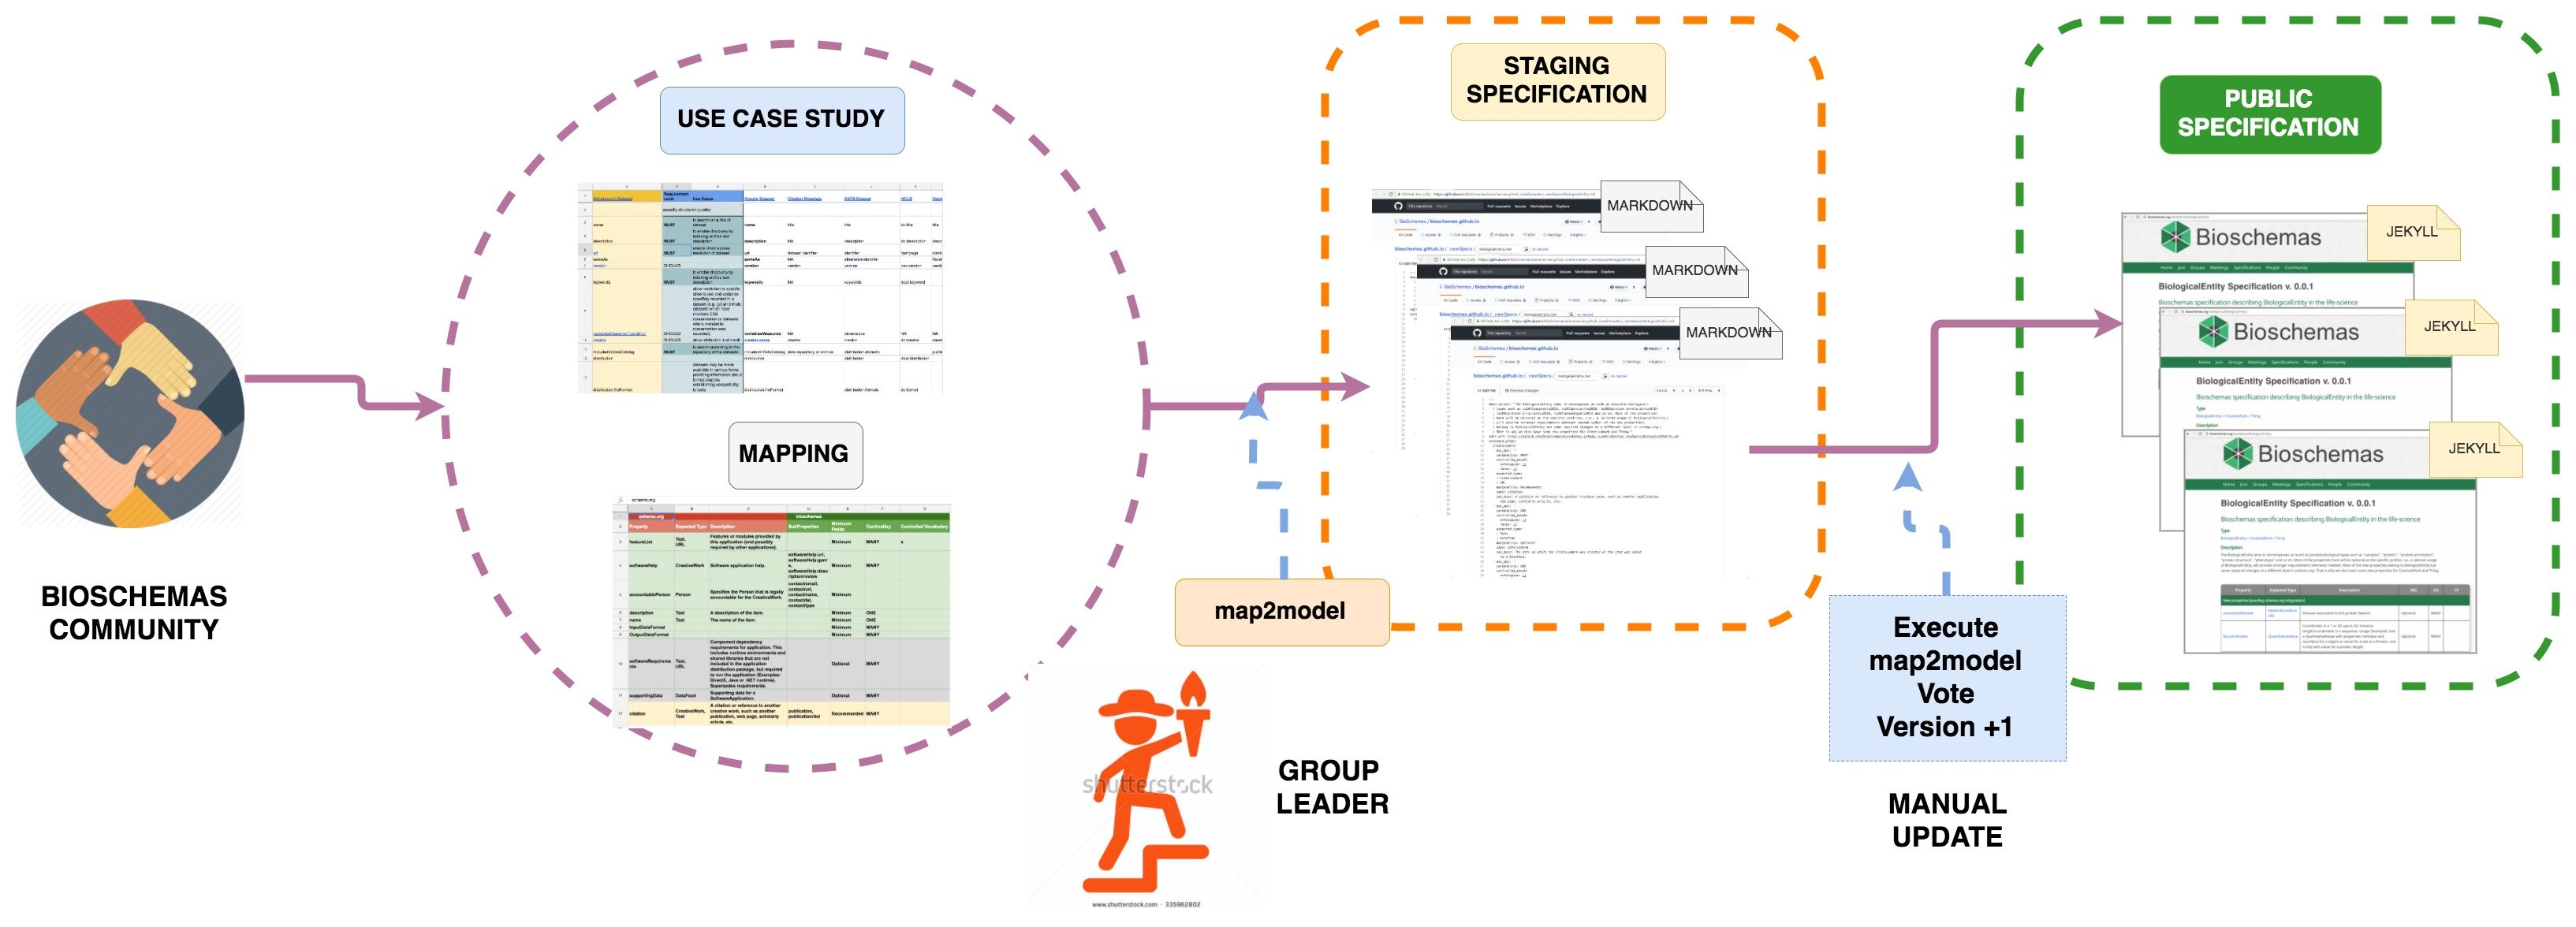 Goverance process for developing profiles in the Bioschemas community.